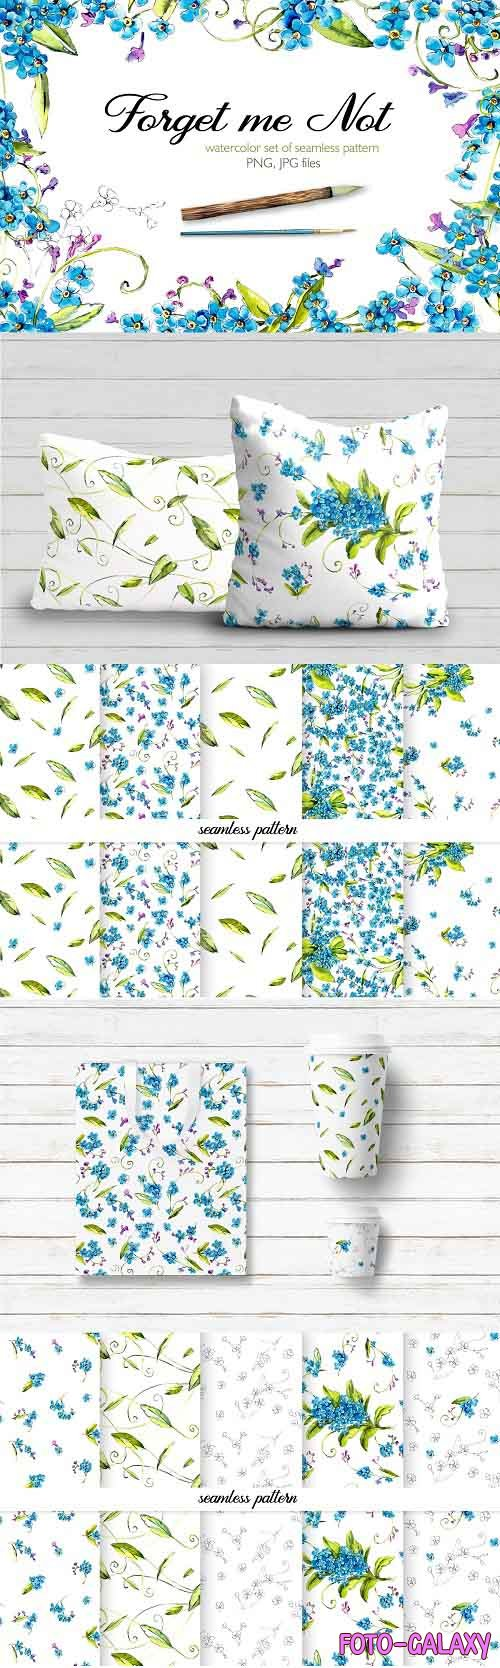 Seamless pattern of forget-me-not - 3816723